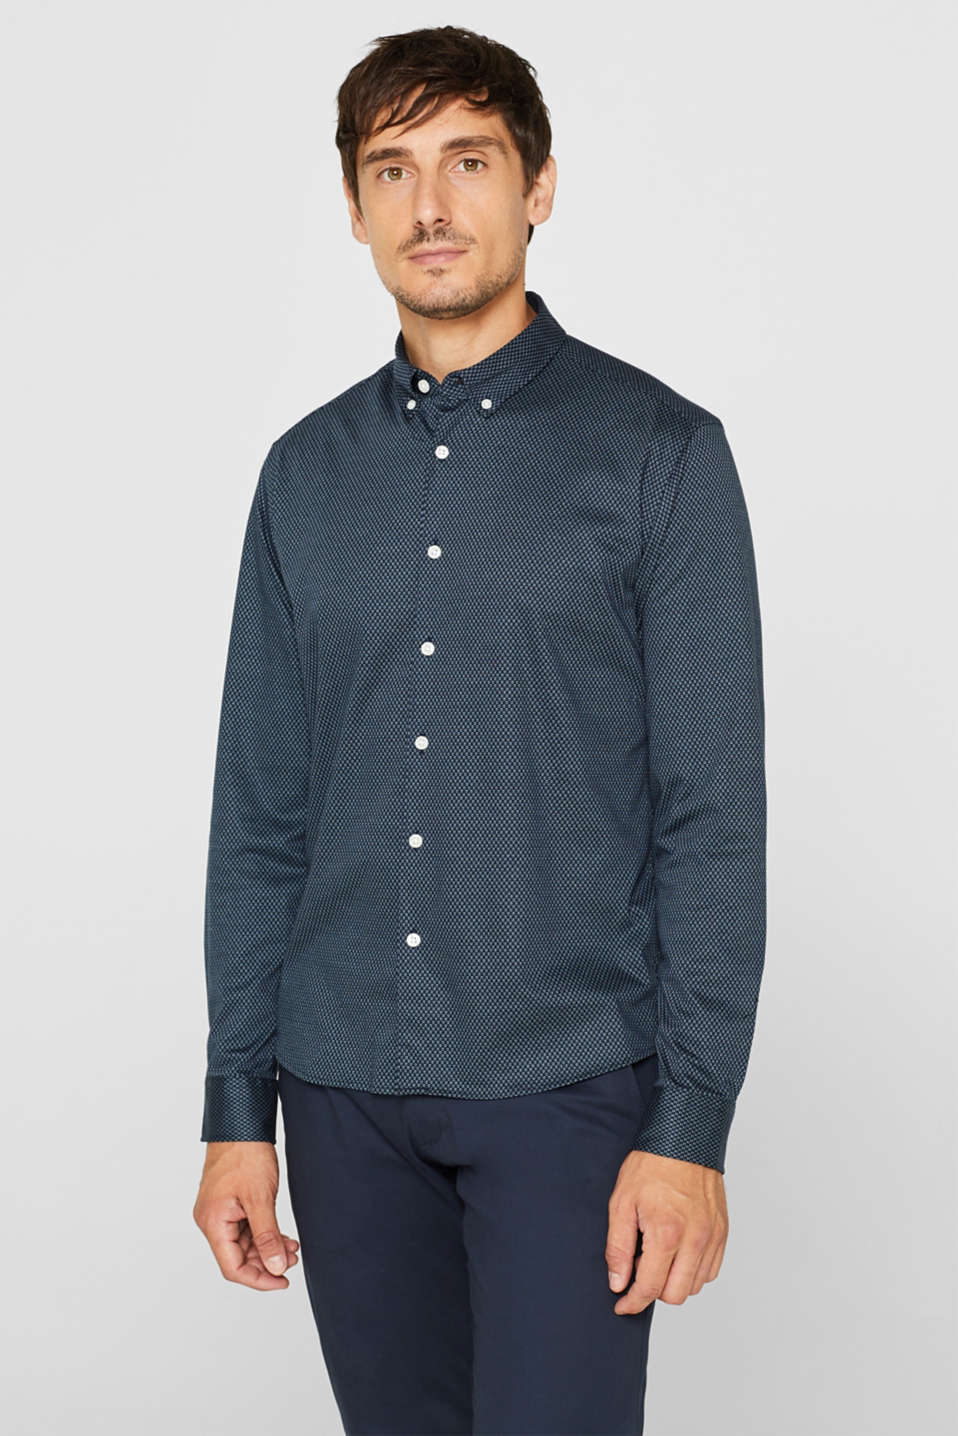 Esprit - Shirt with a diamond pattern, 100% cotton